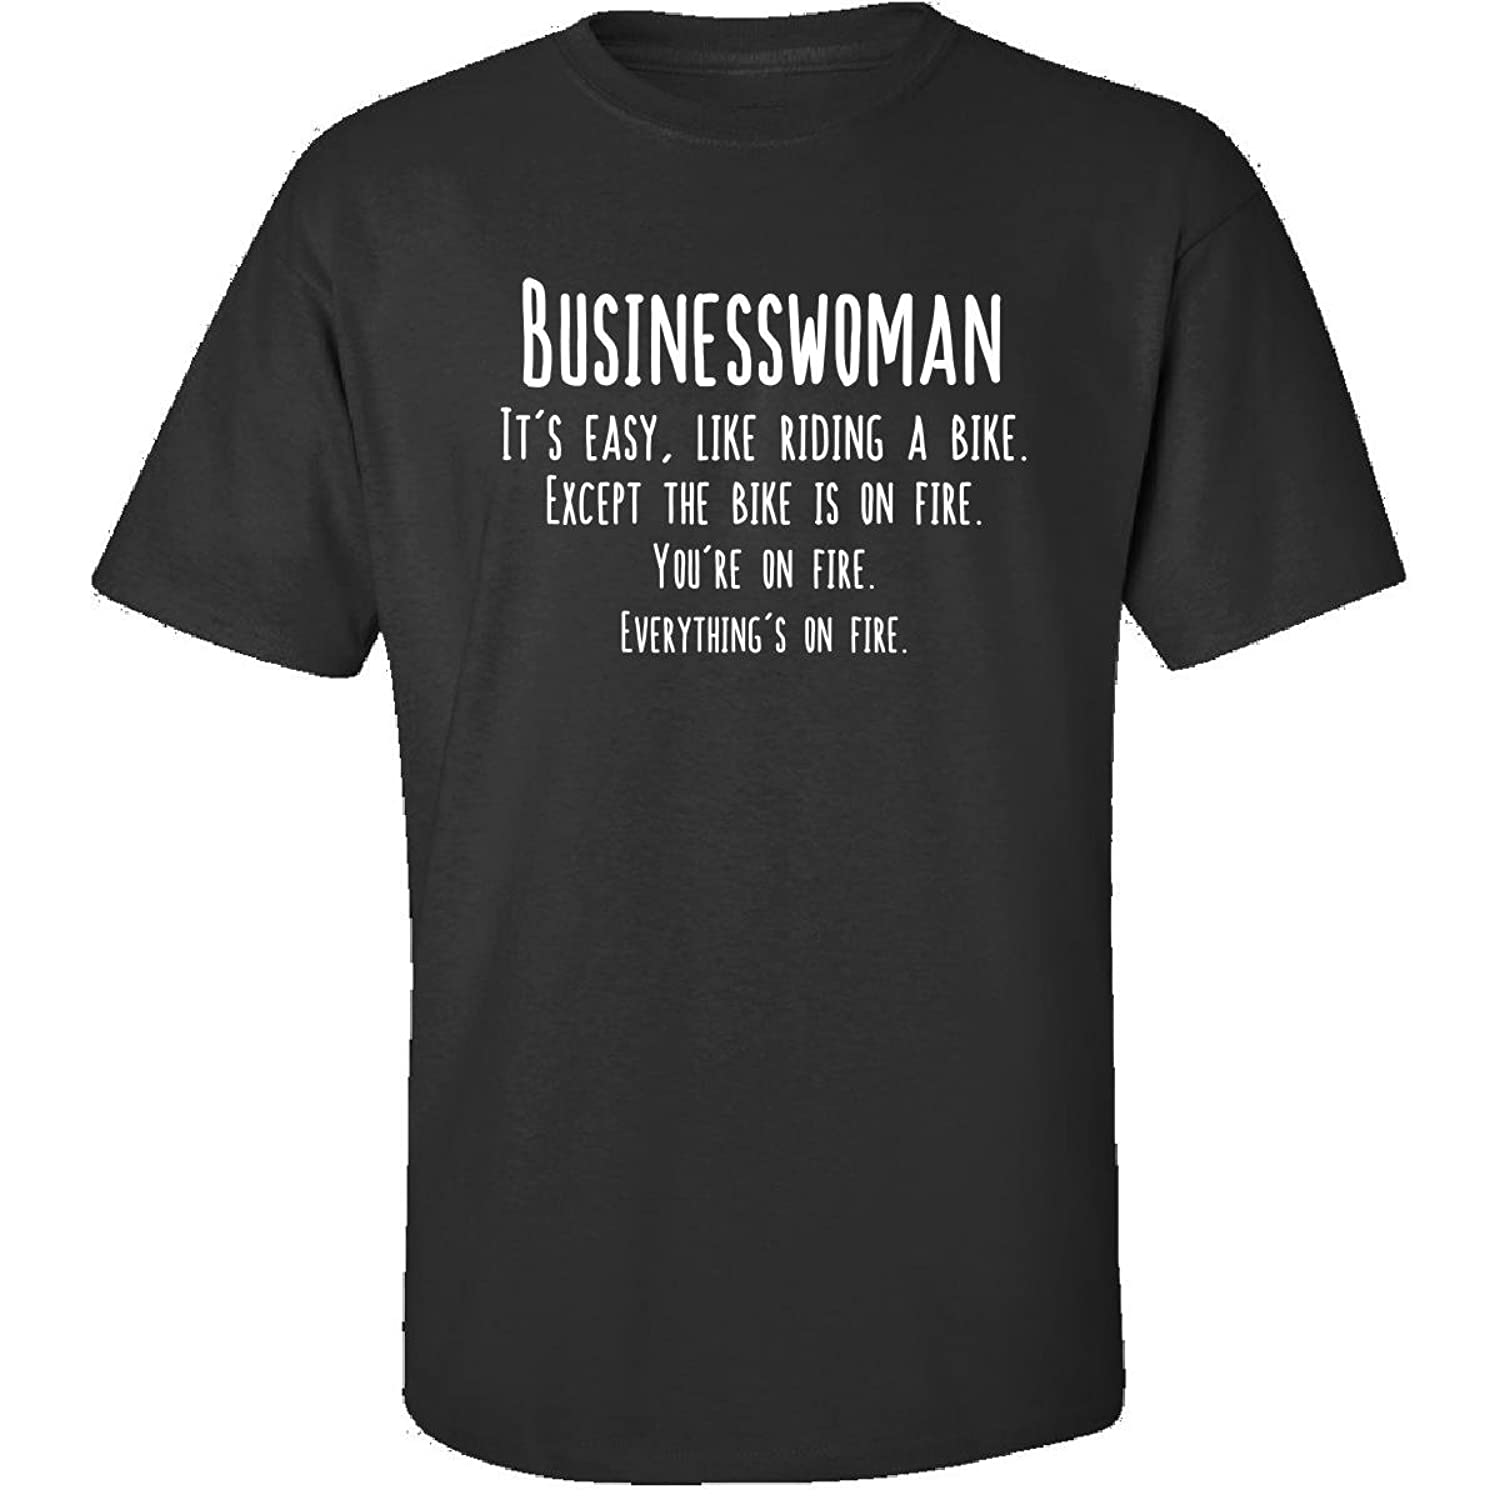 Businesswoman Is Easy Like Riding Bike On Fire Funny Job - Adult Shirt